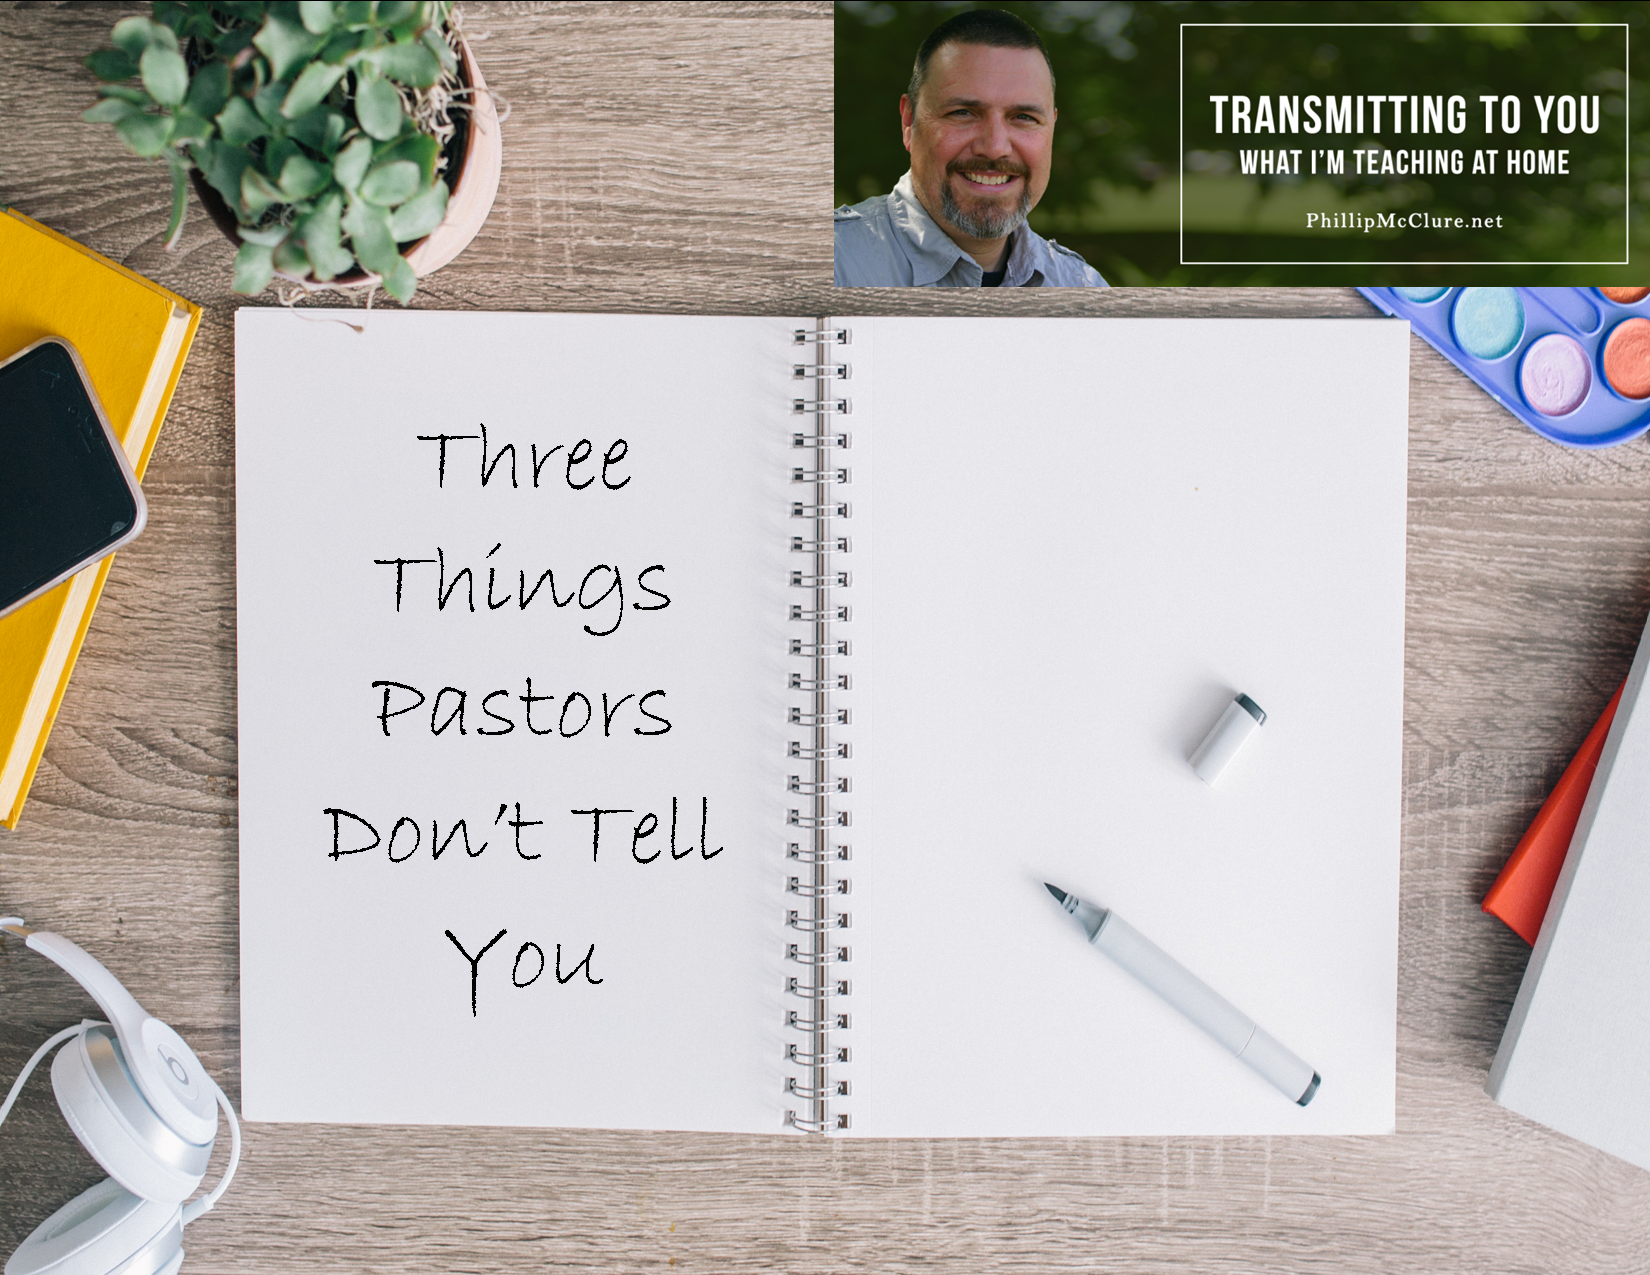 image for Three Things Pastors Don't Tell You blog post